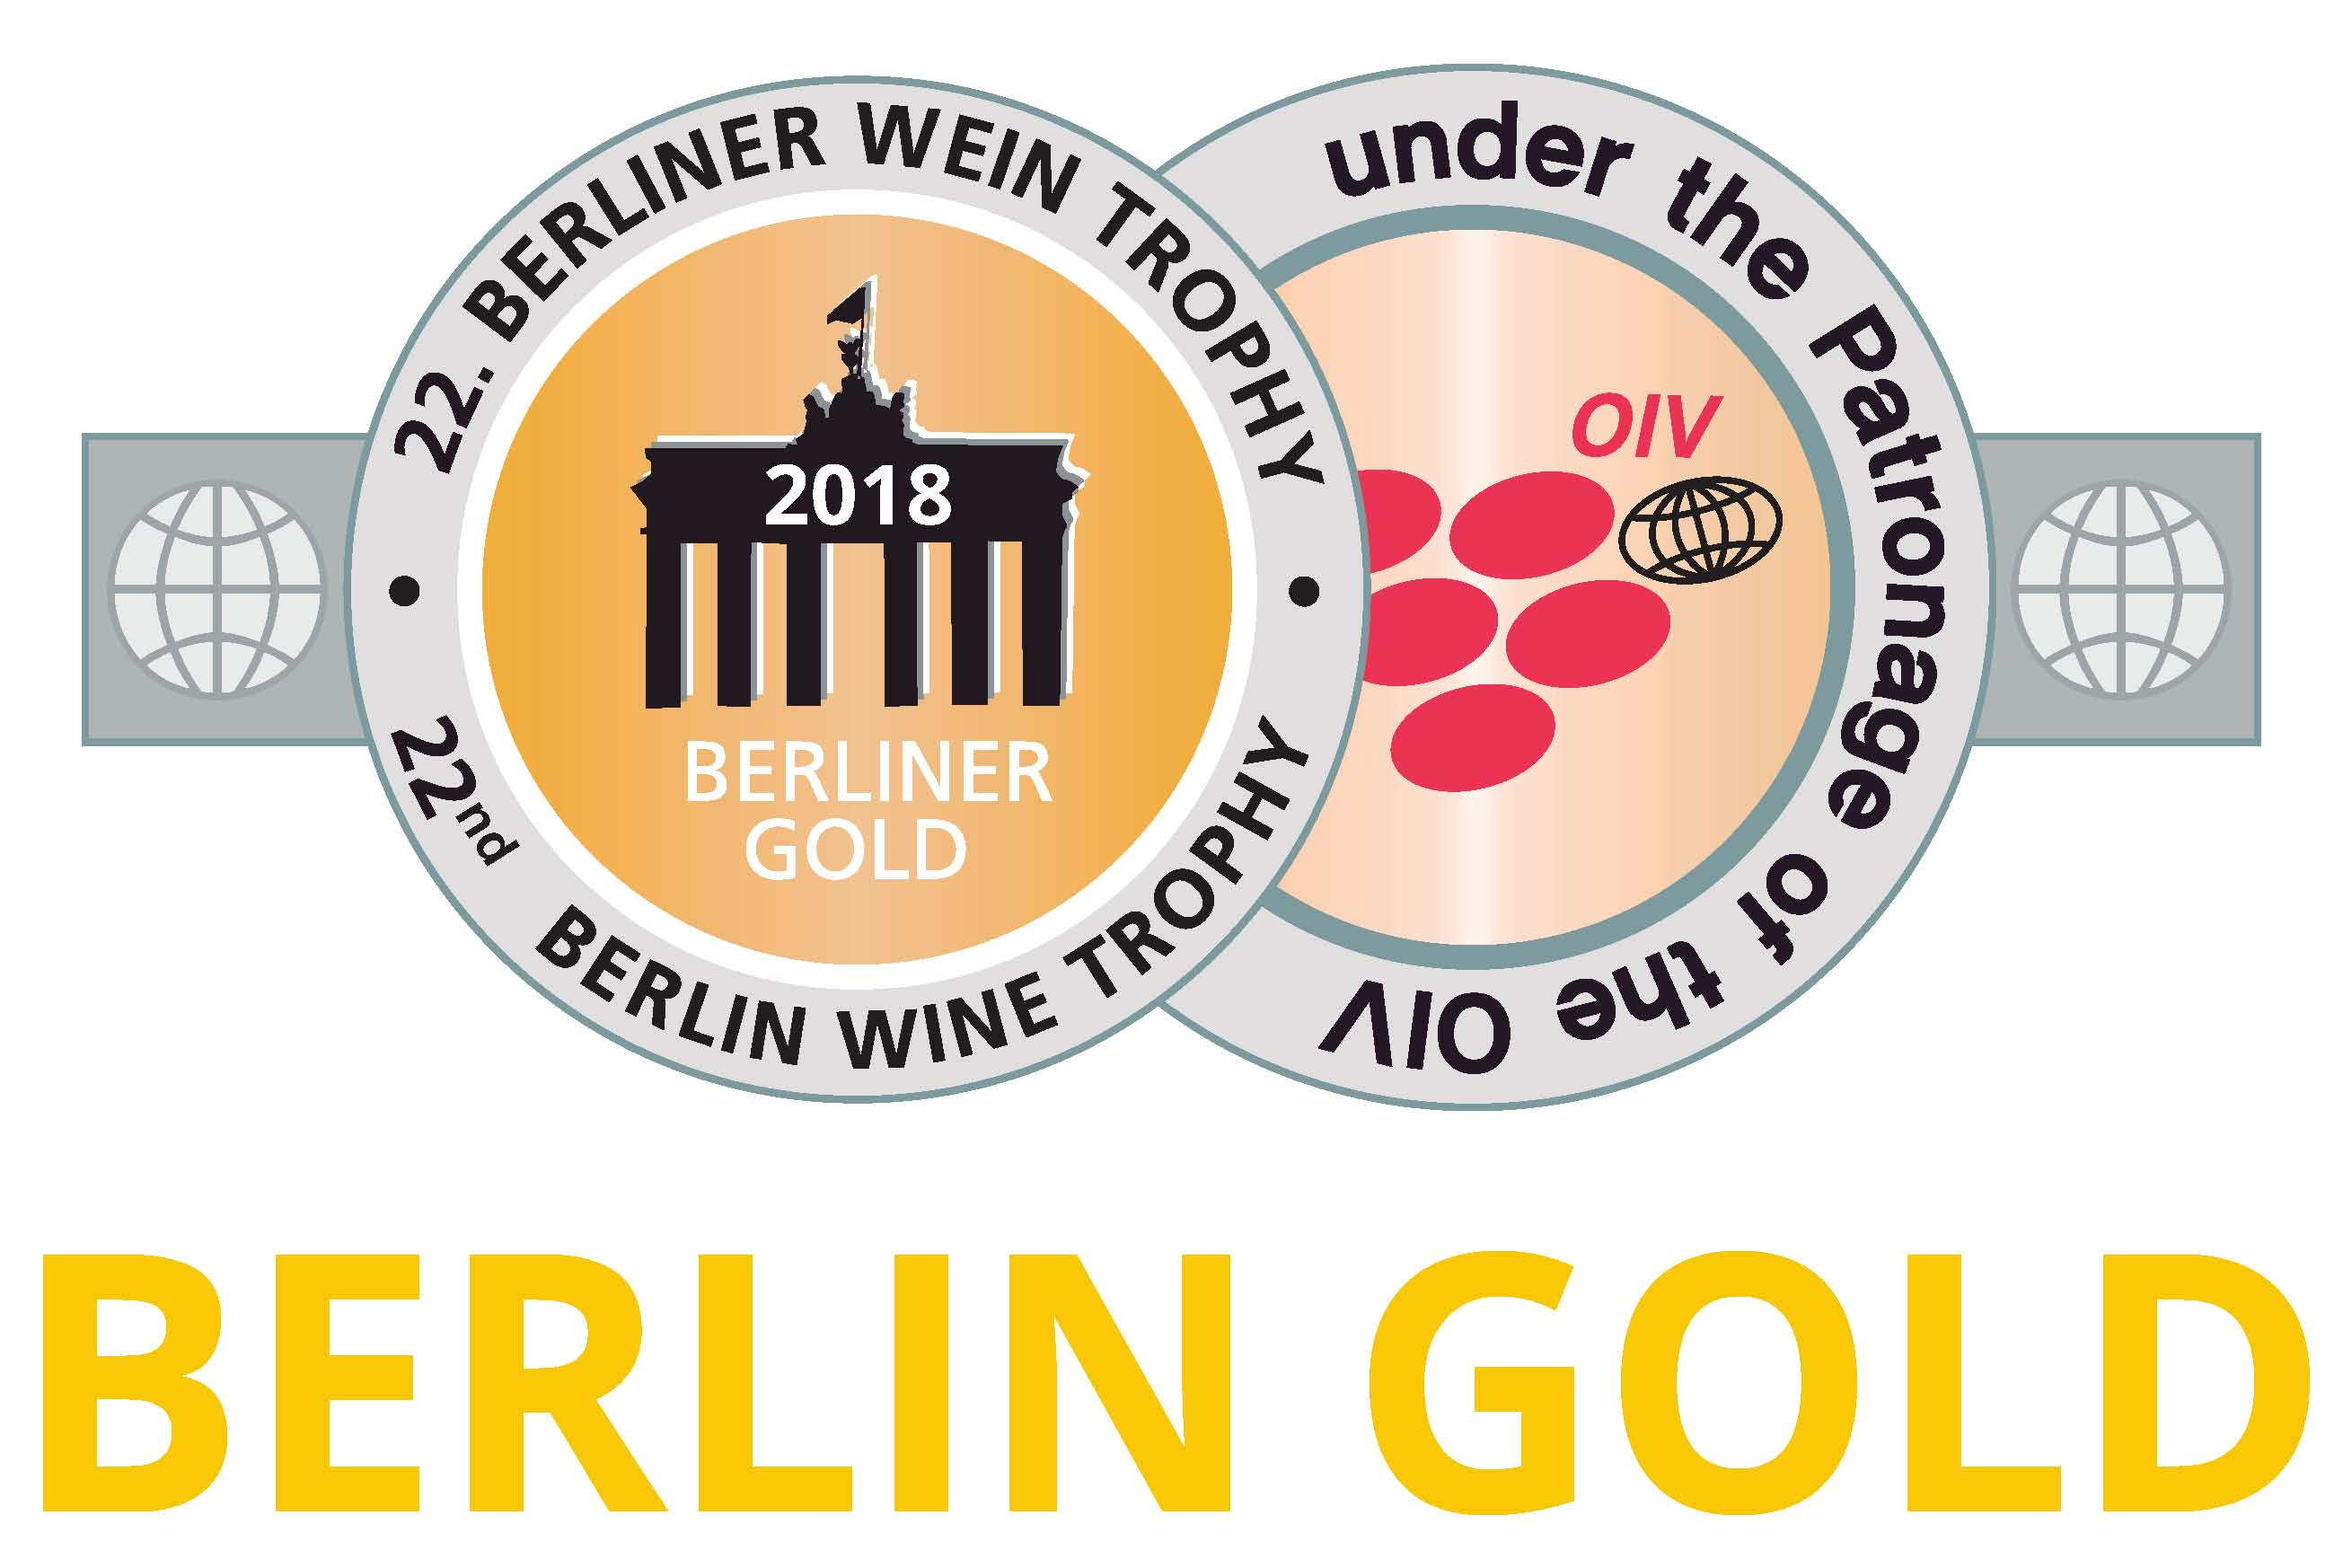 August 2018: Berliner Gold at the Berliner wine trophy 2018 for vintage 2017